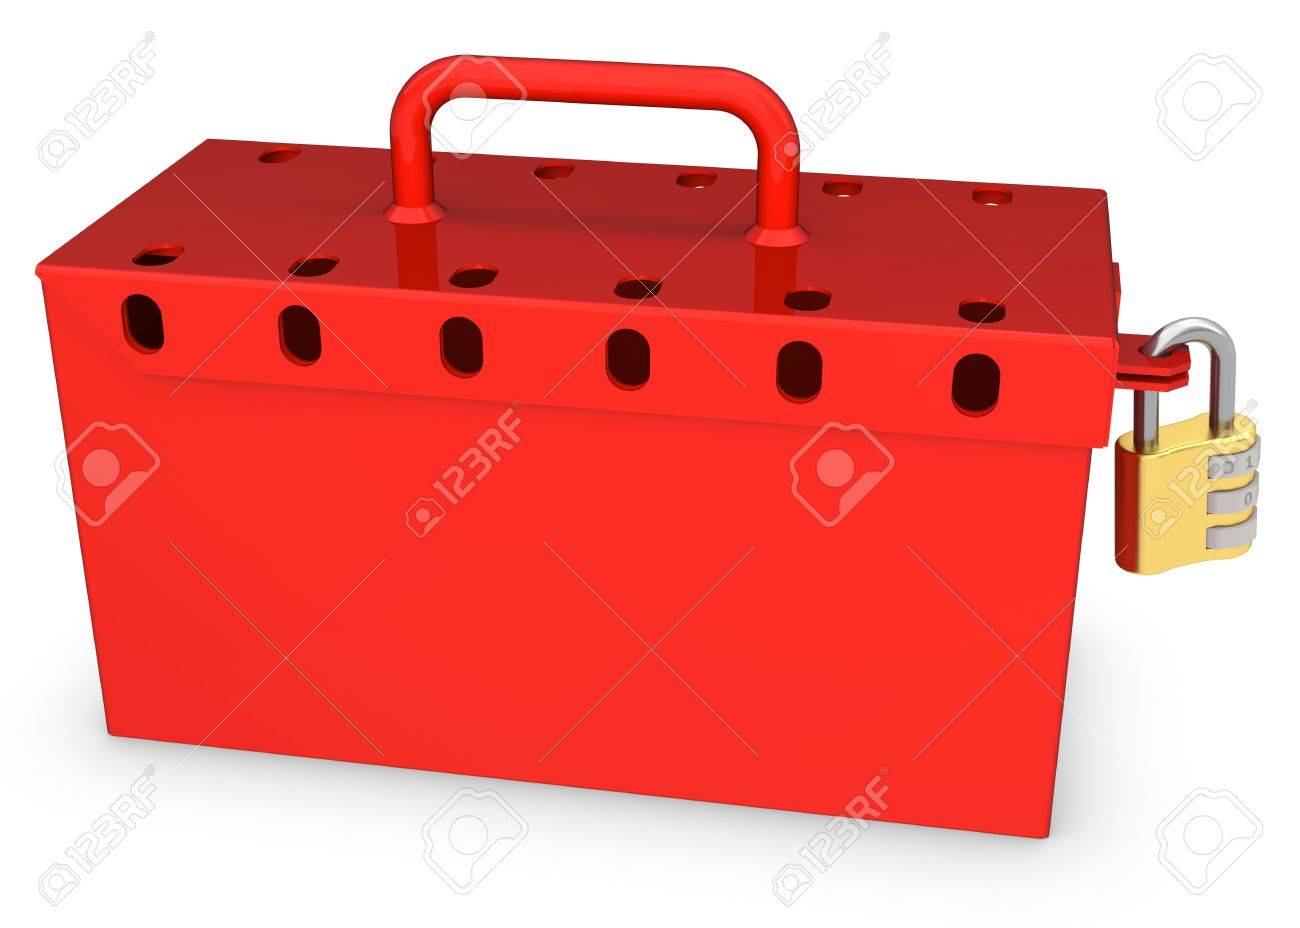 Image result for locked box